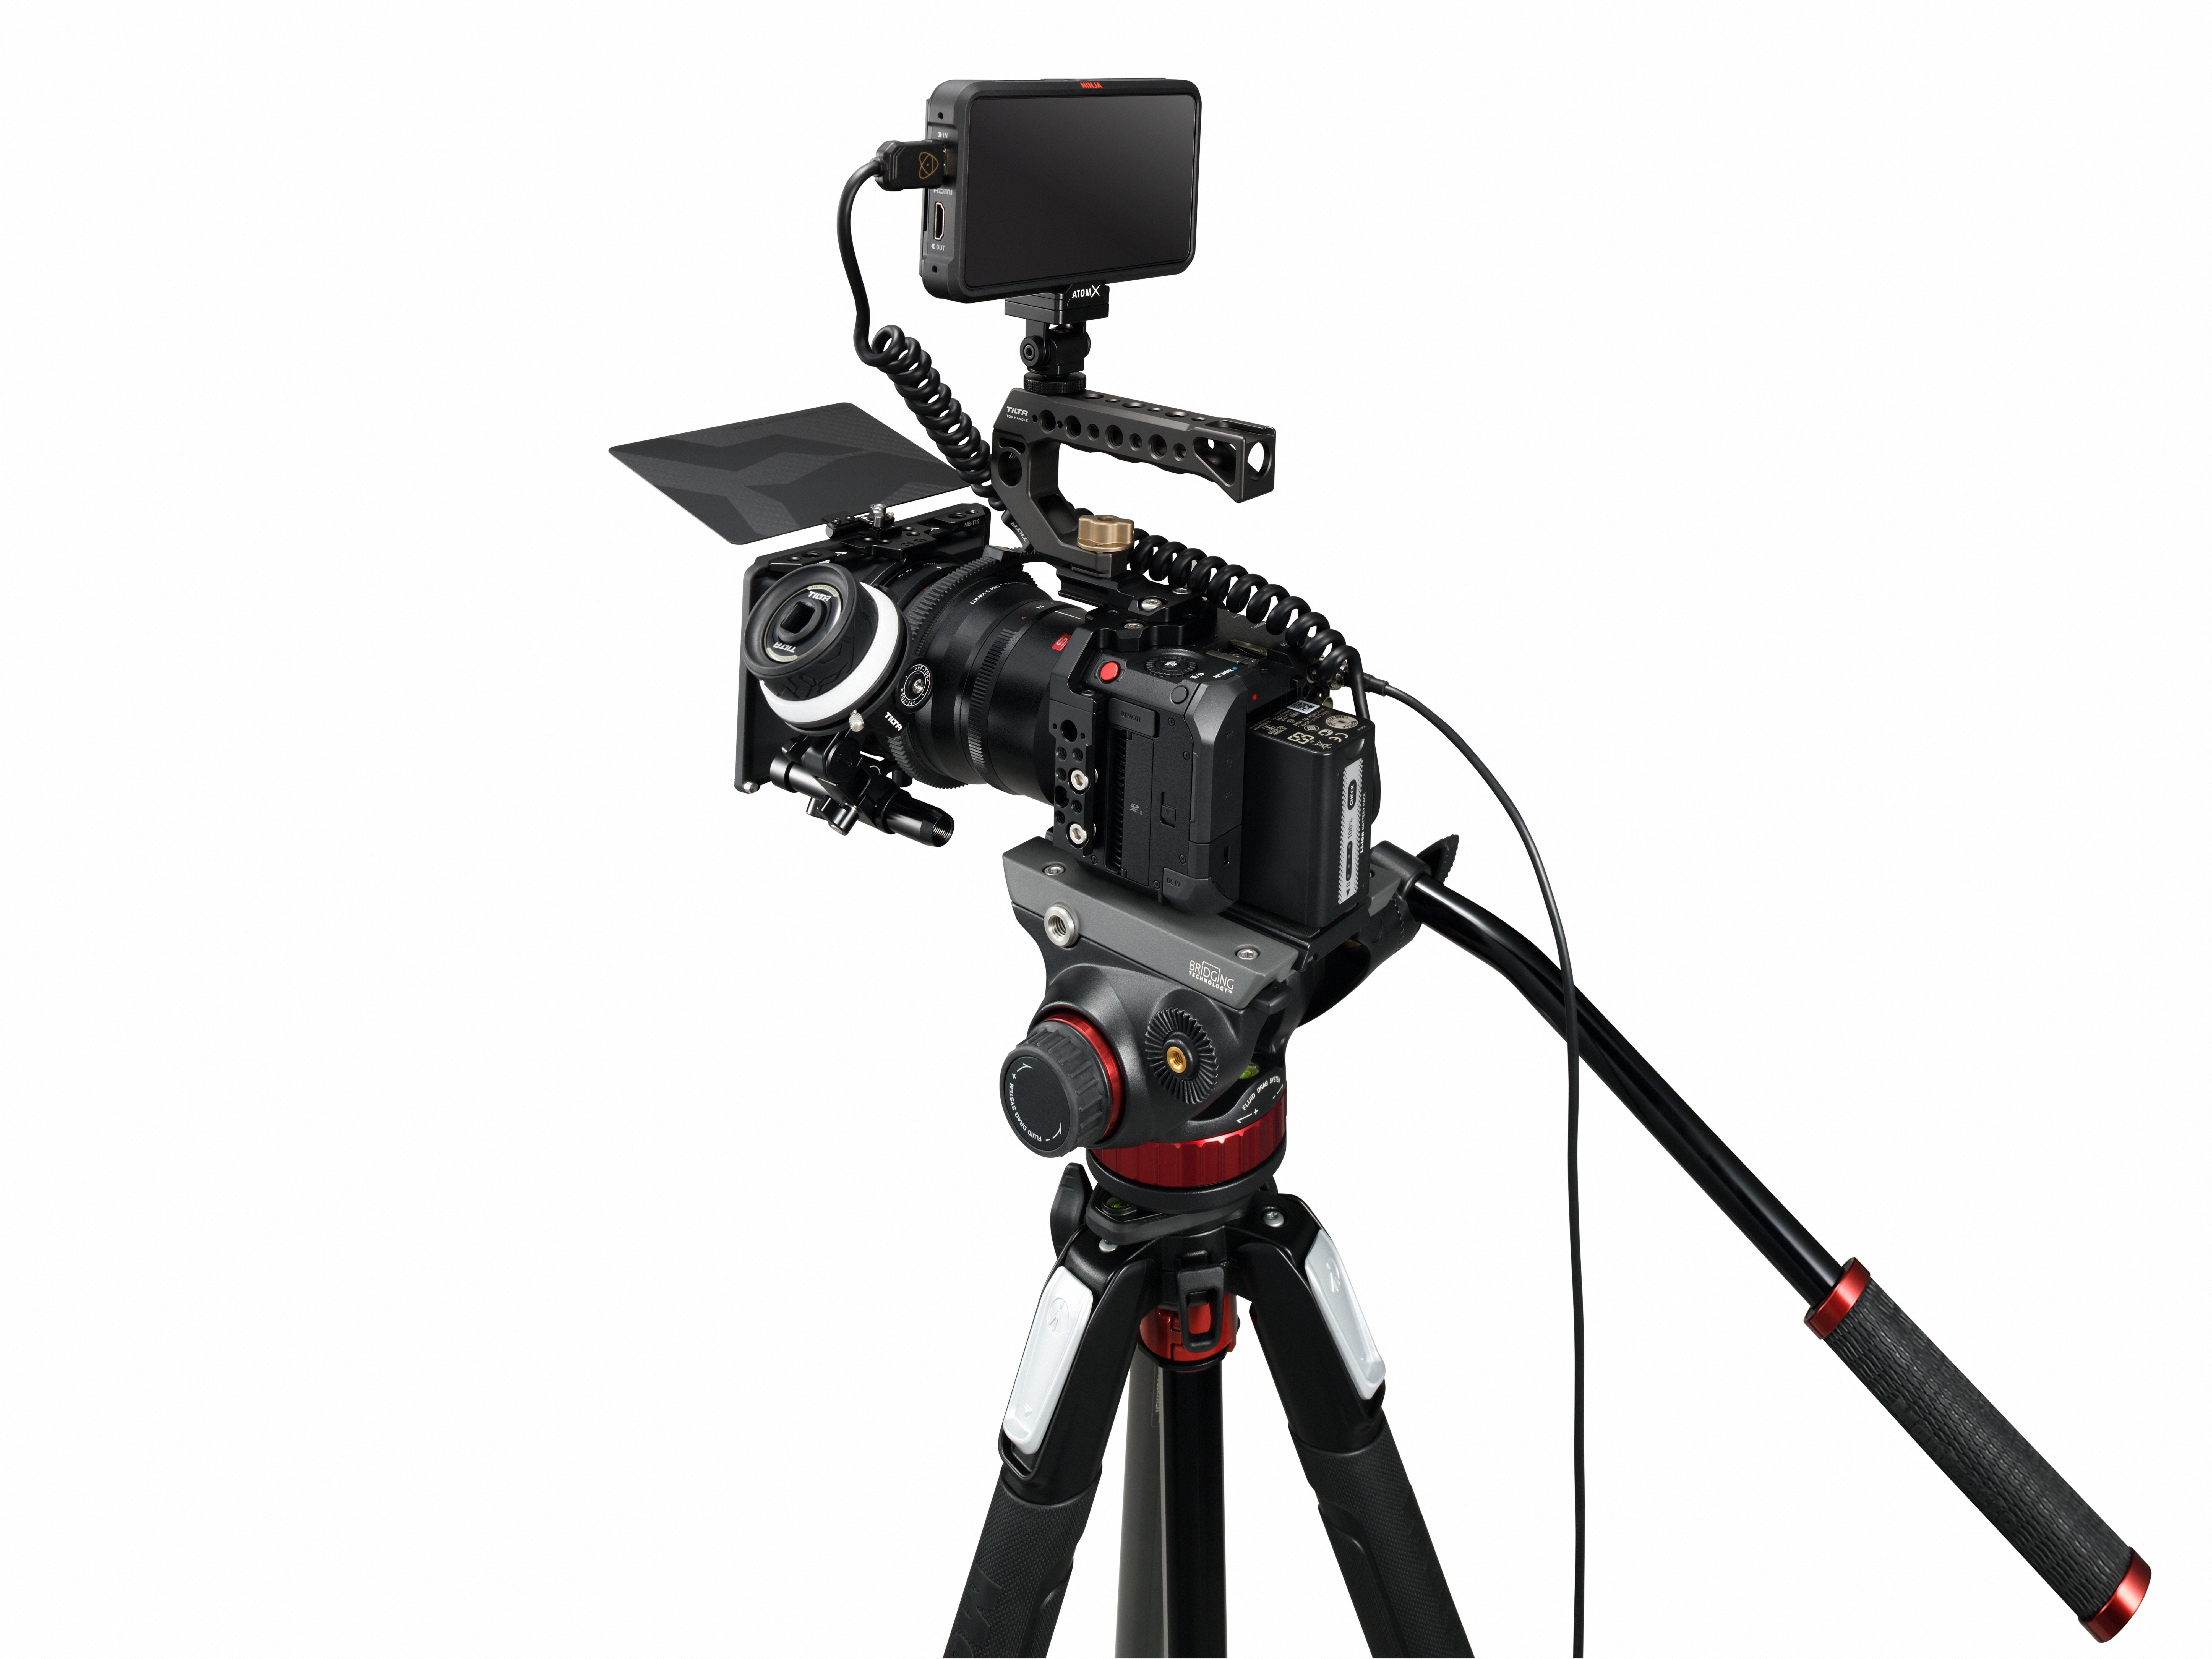 The Lumix DC-BS1H camera has numerous mounting points and connection for attaching the hardware you need for a video shoot